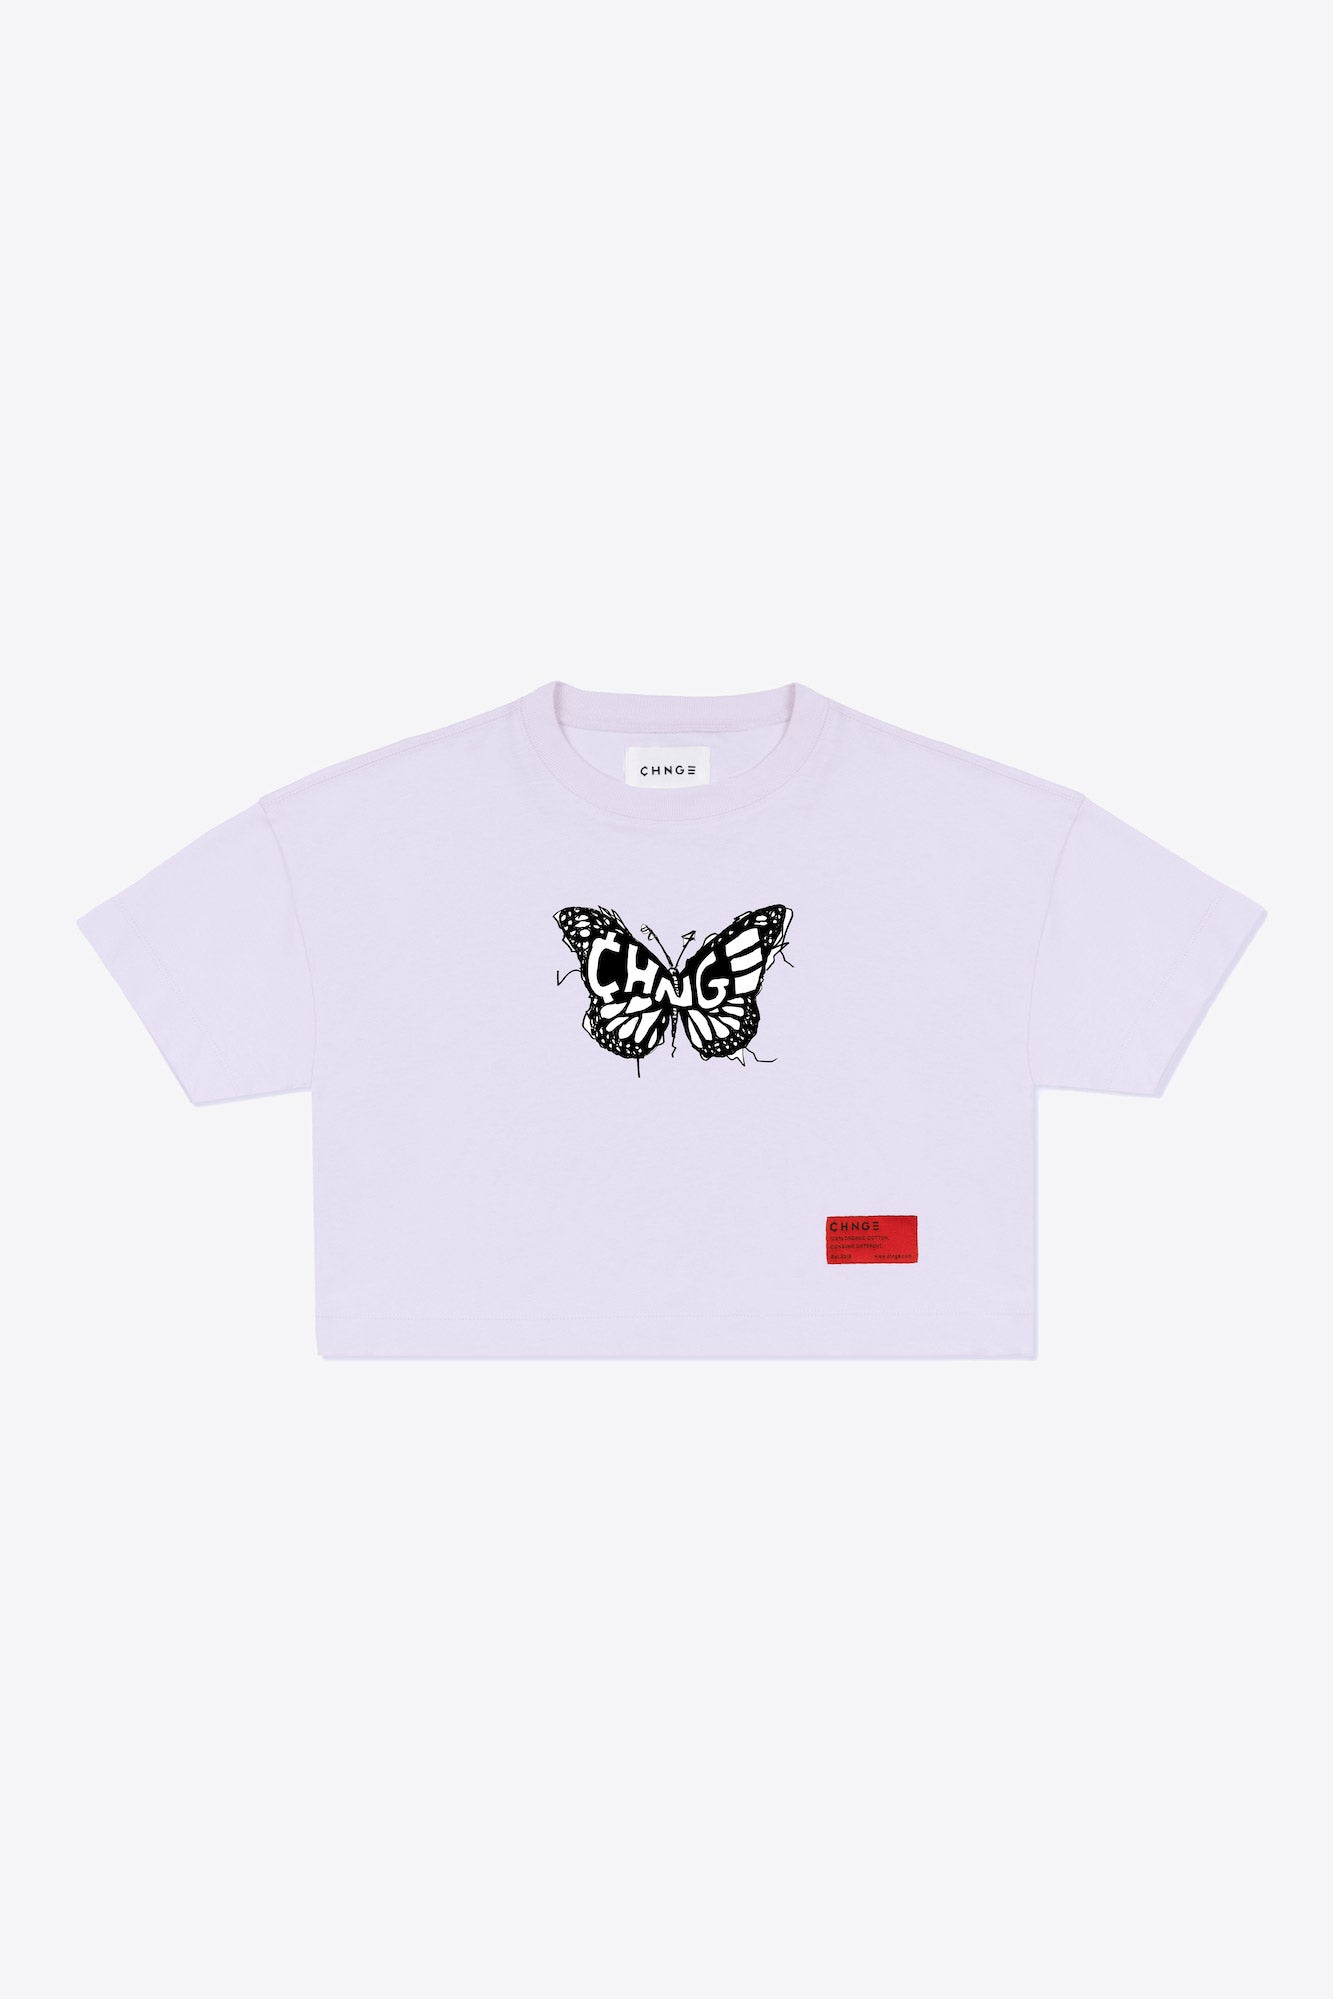 CHNGE logo butterfly Crop Top (Violet)